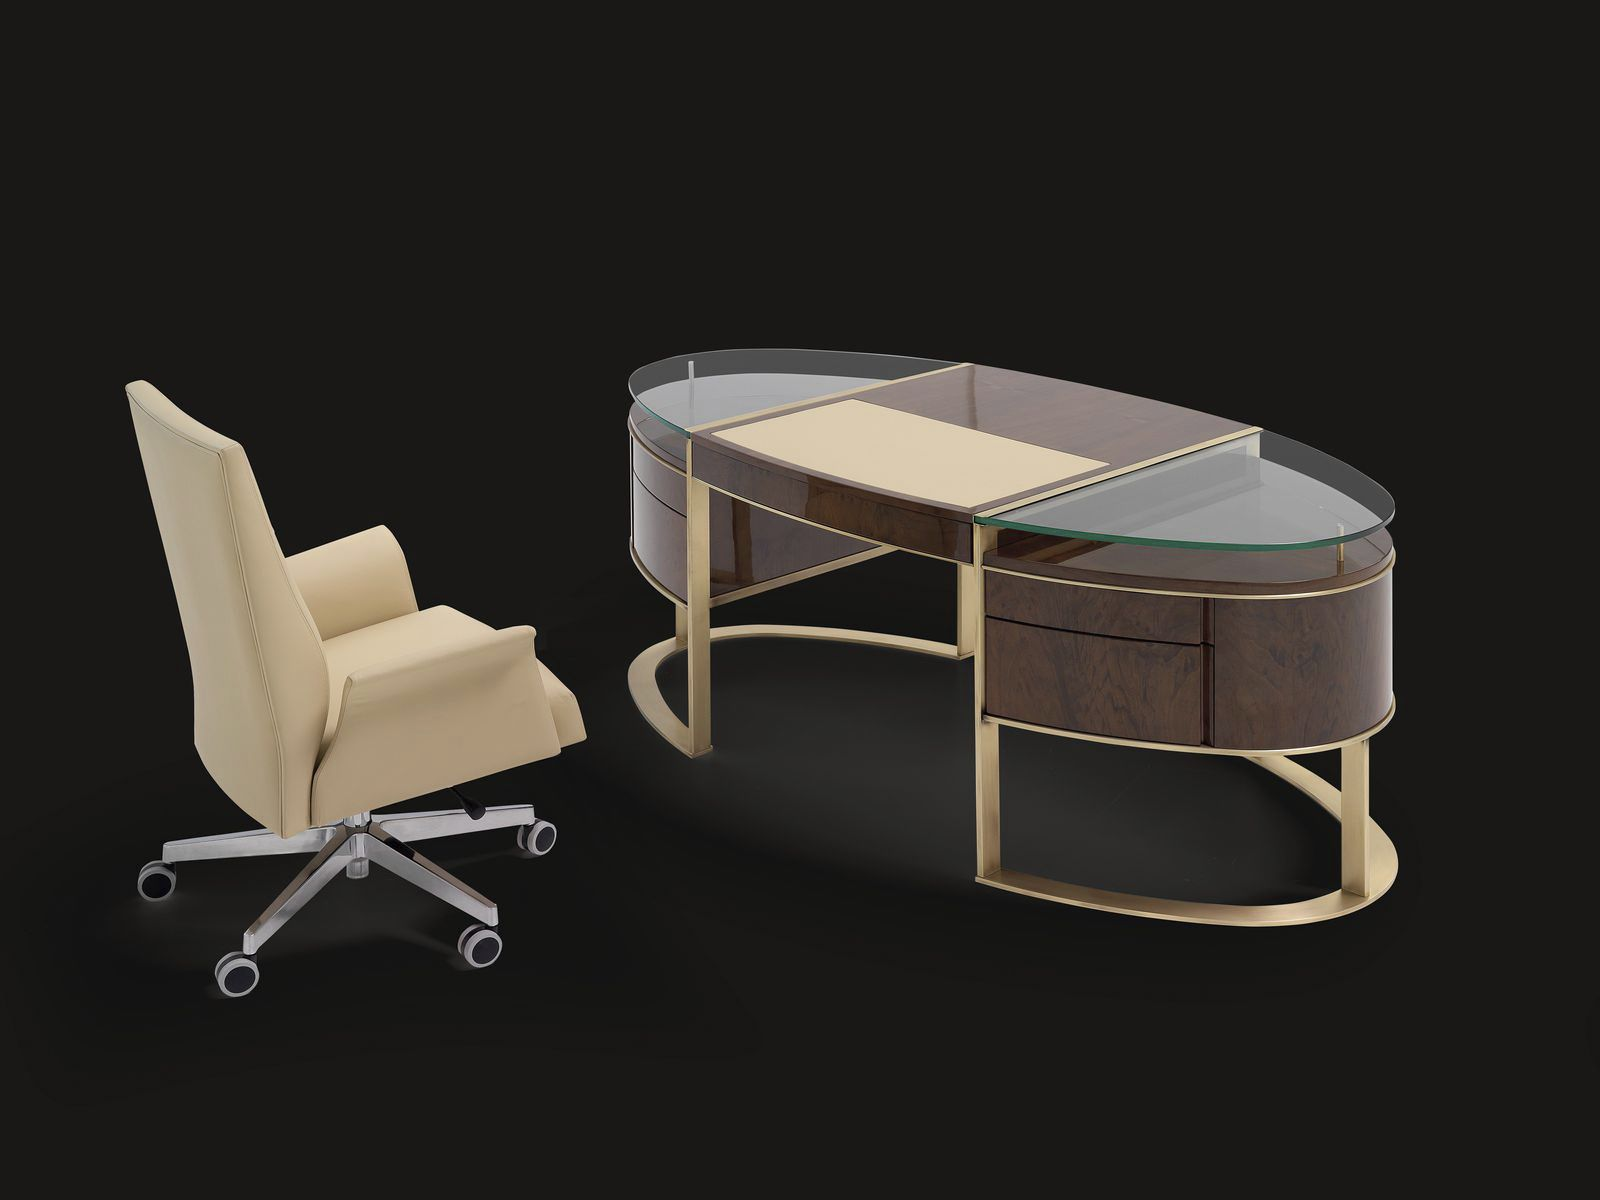 glass desk contemporary artisan by planum furniture mobil fresno: dining room chairs mobil fresno